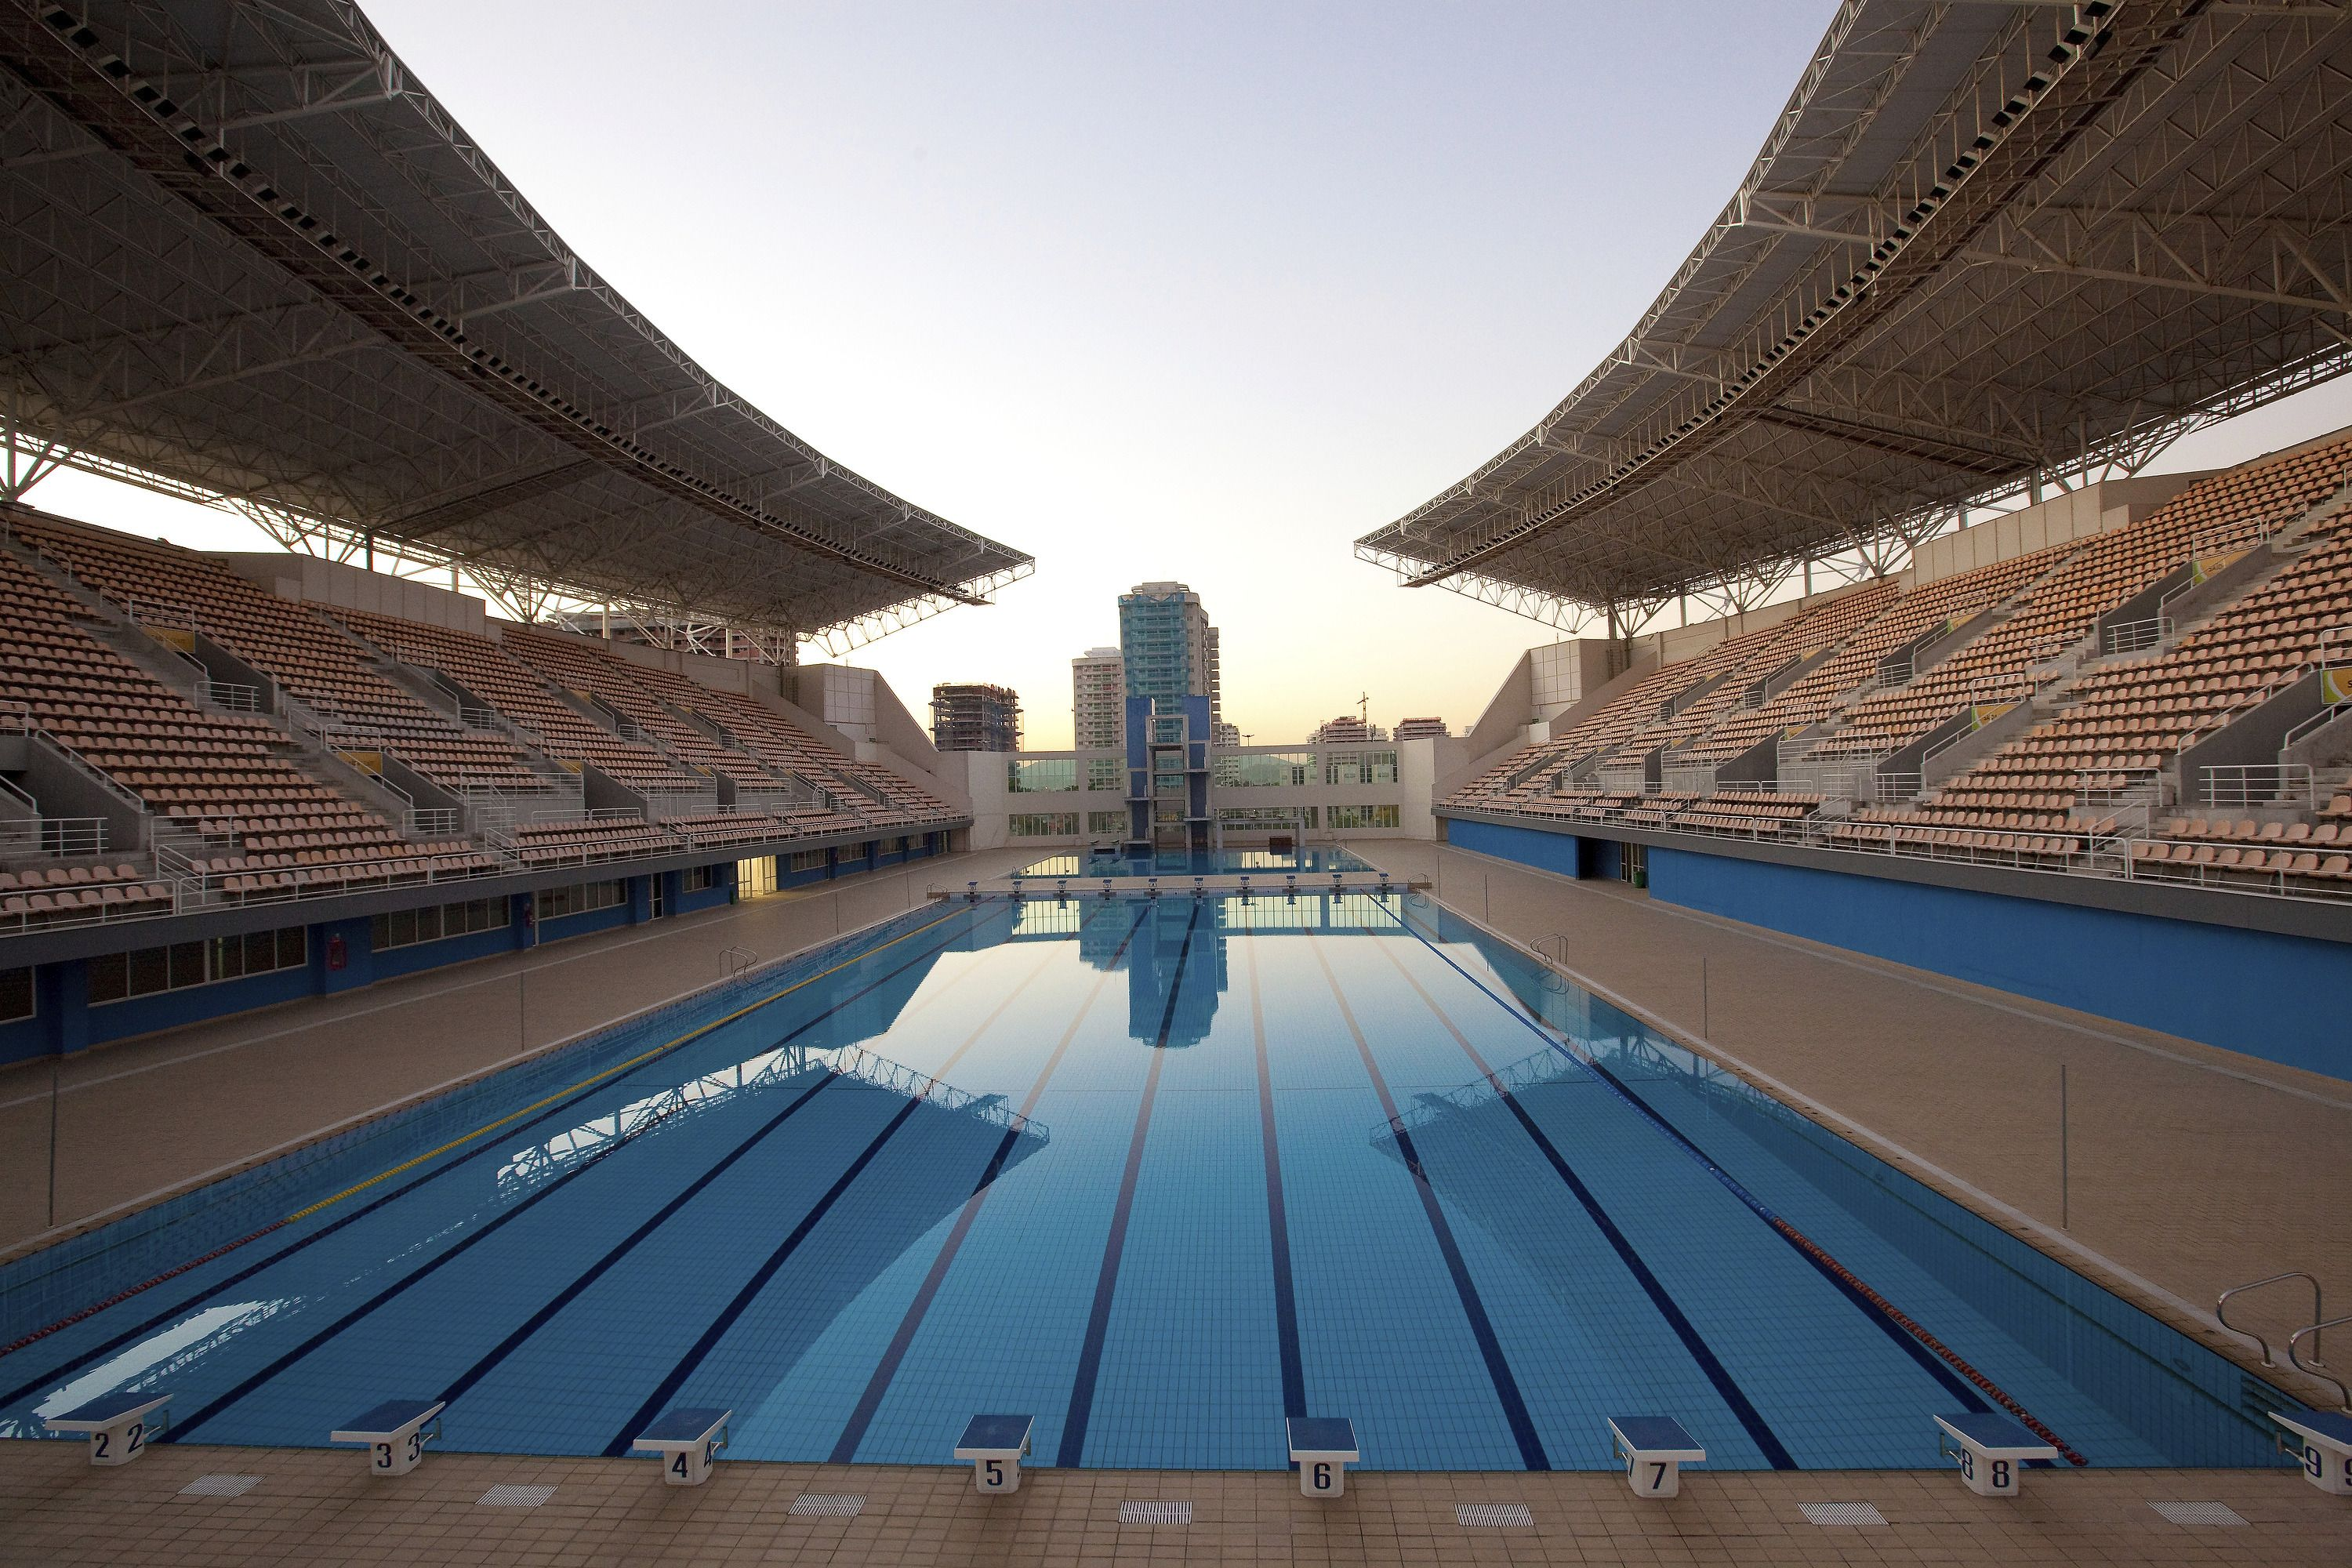 Olympic Swimming Pool 2016 unique olympic swimming pool 2016 size pooljpg y inside design